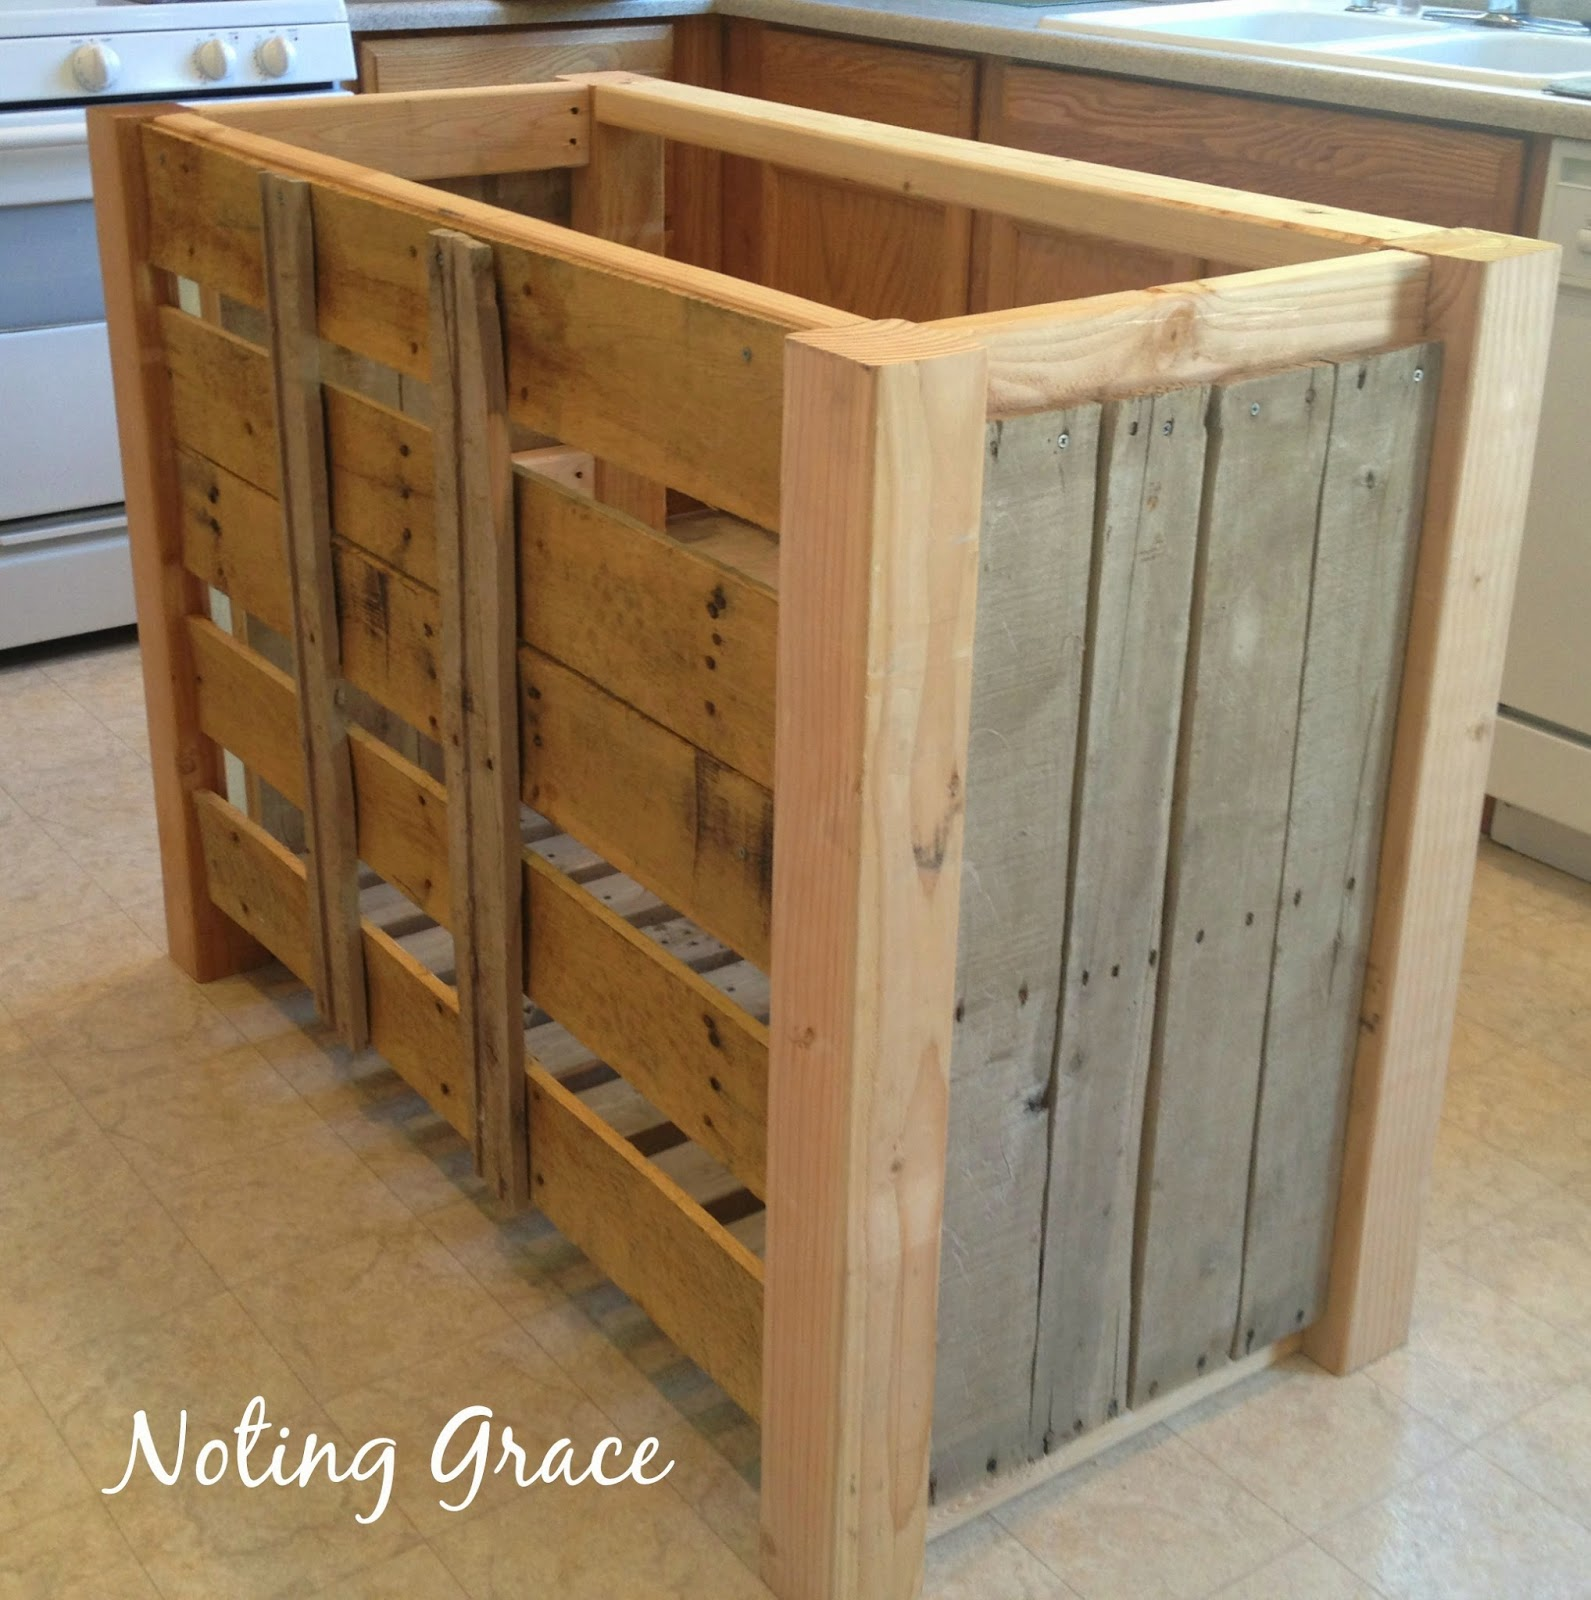 Noting Grace: DIY Pallet Kitchen Island For Less Than $50